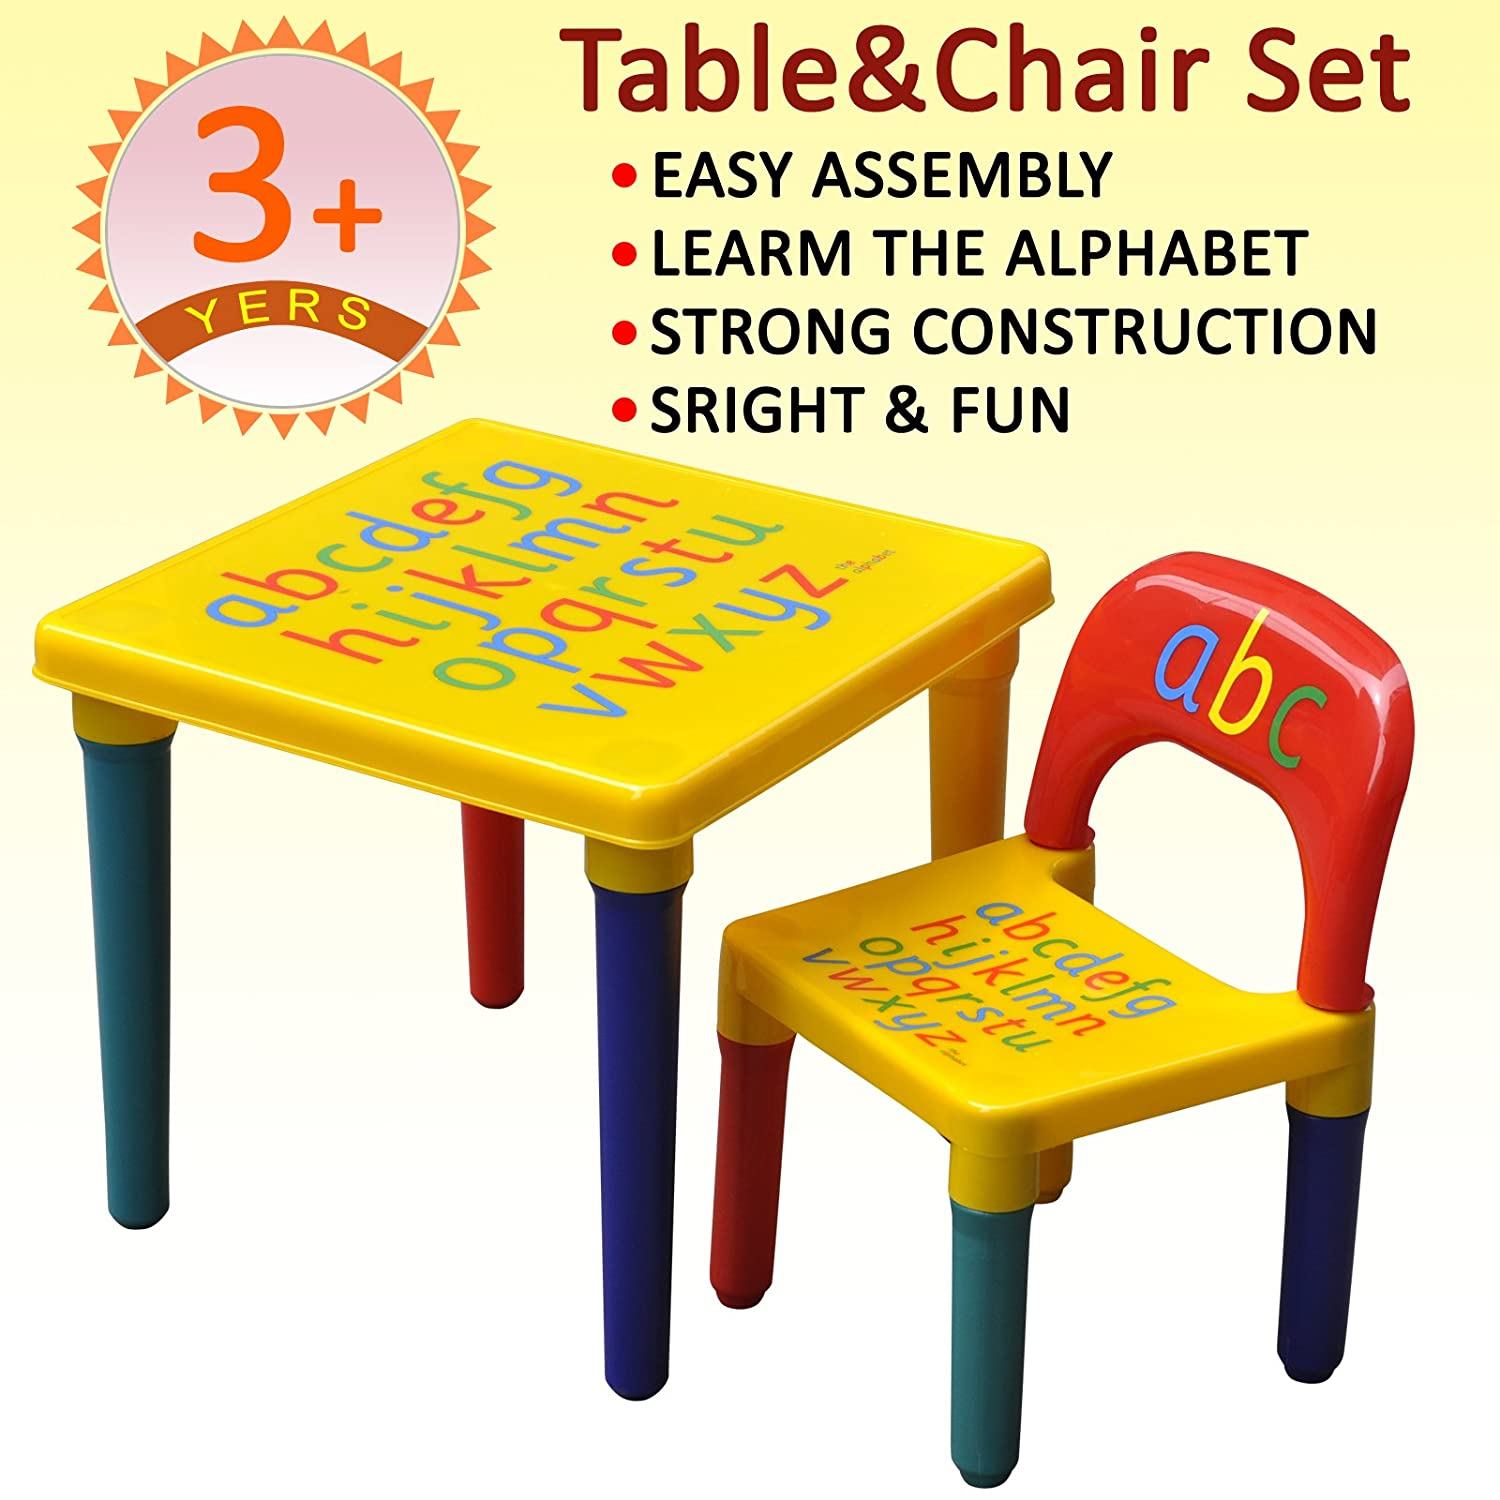 Kids Children Furniture Table and Chair Set Alphabet Design Bedroom Play Room Children's Furniture